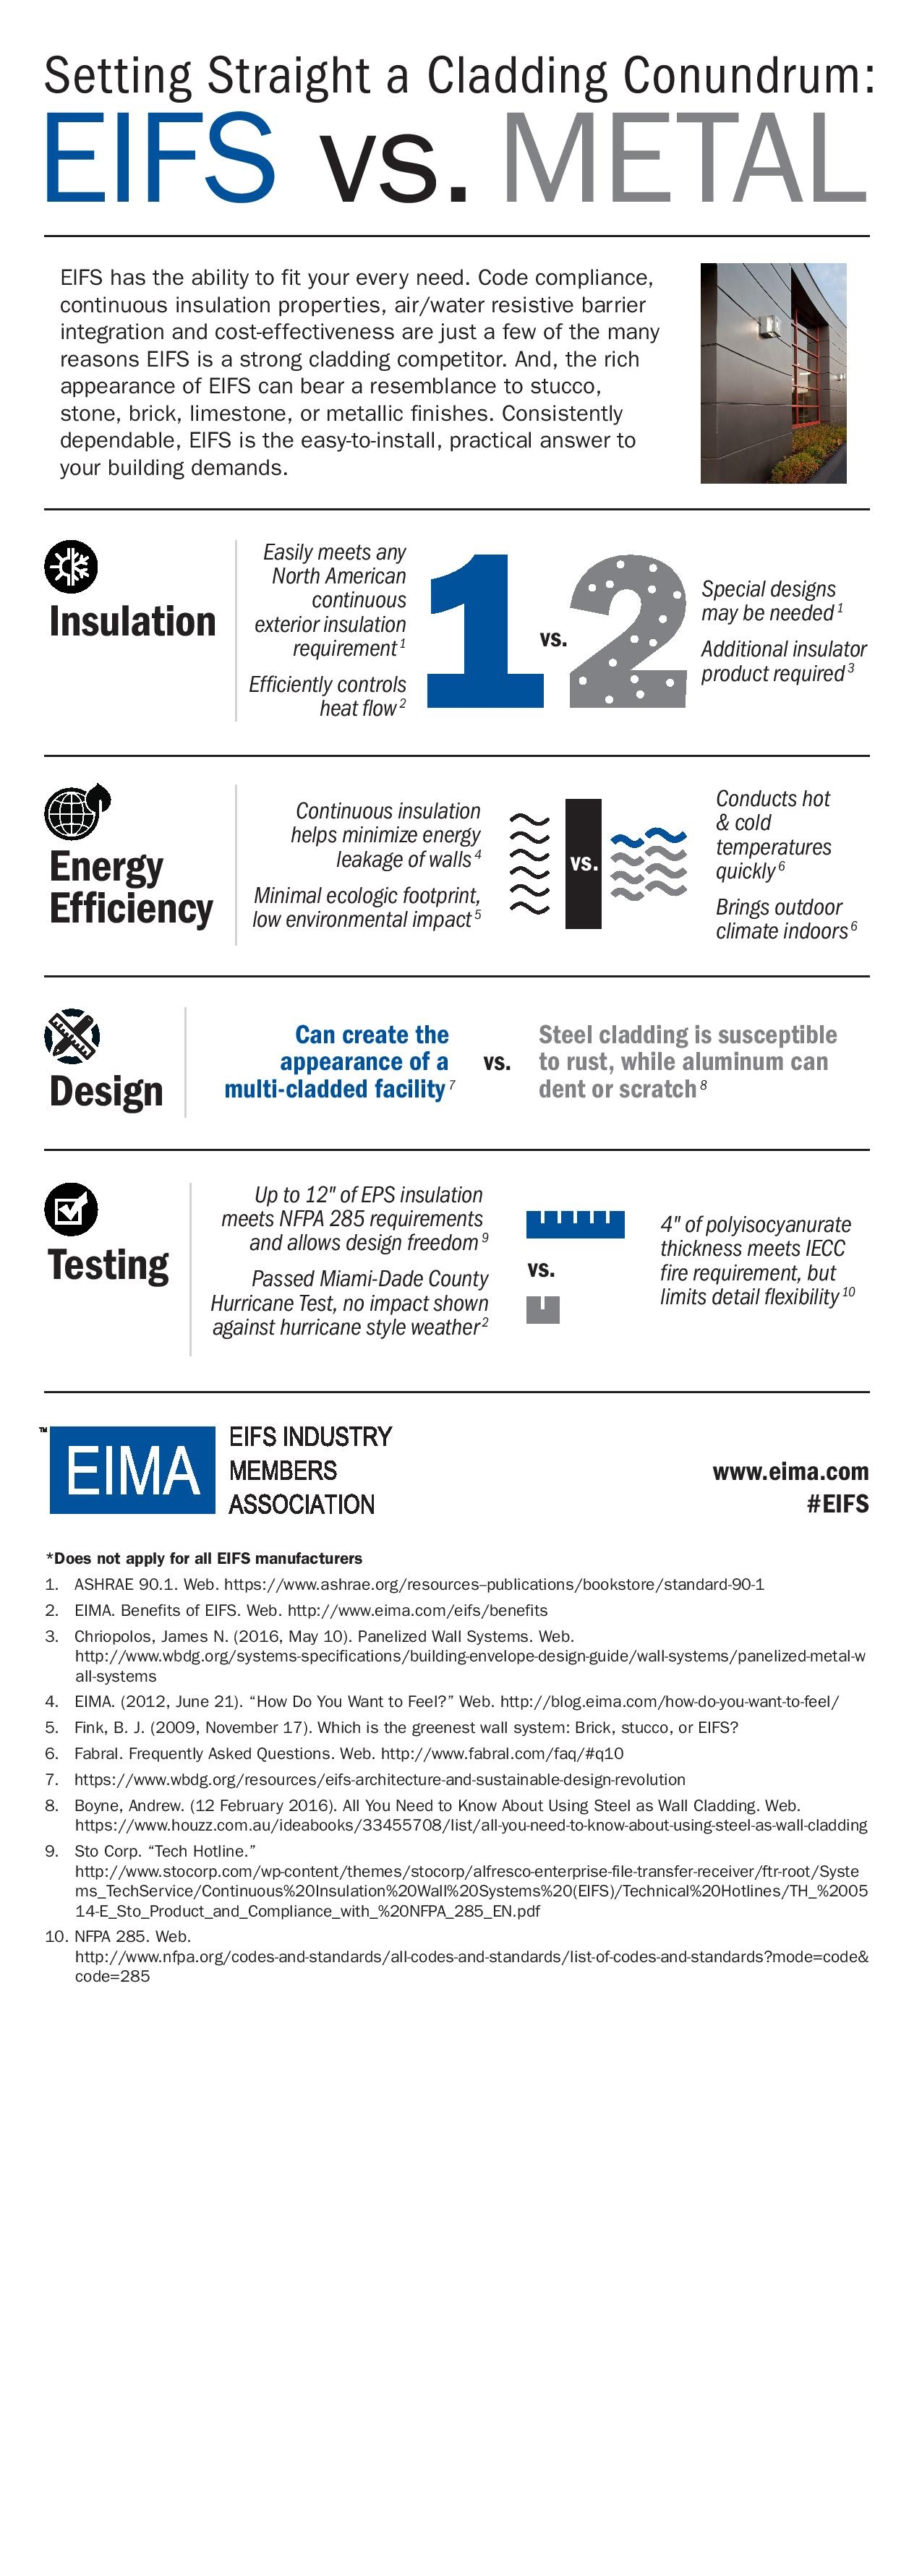 eifs-vs-metal-infographic-image